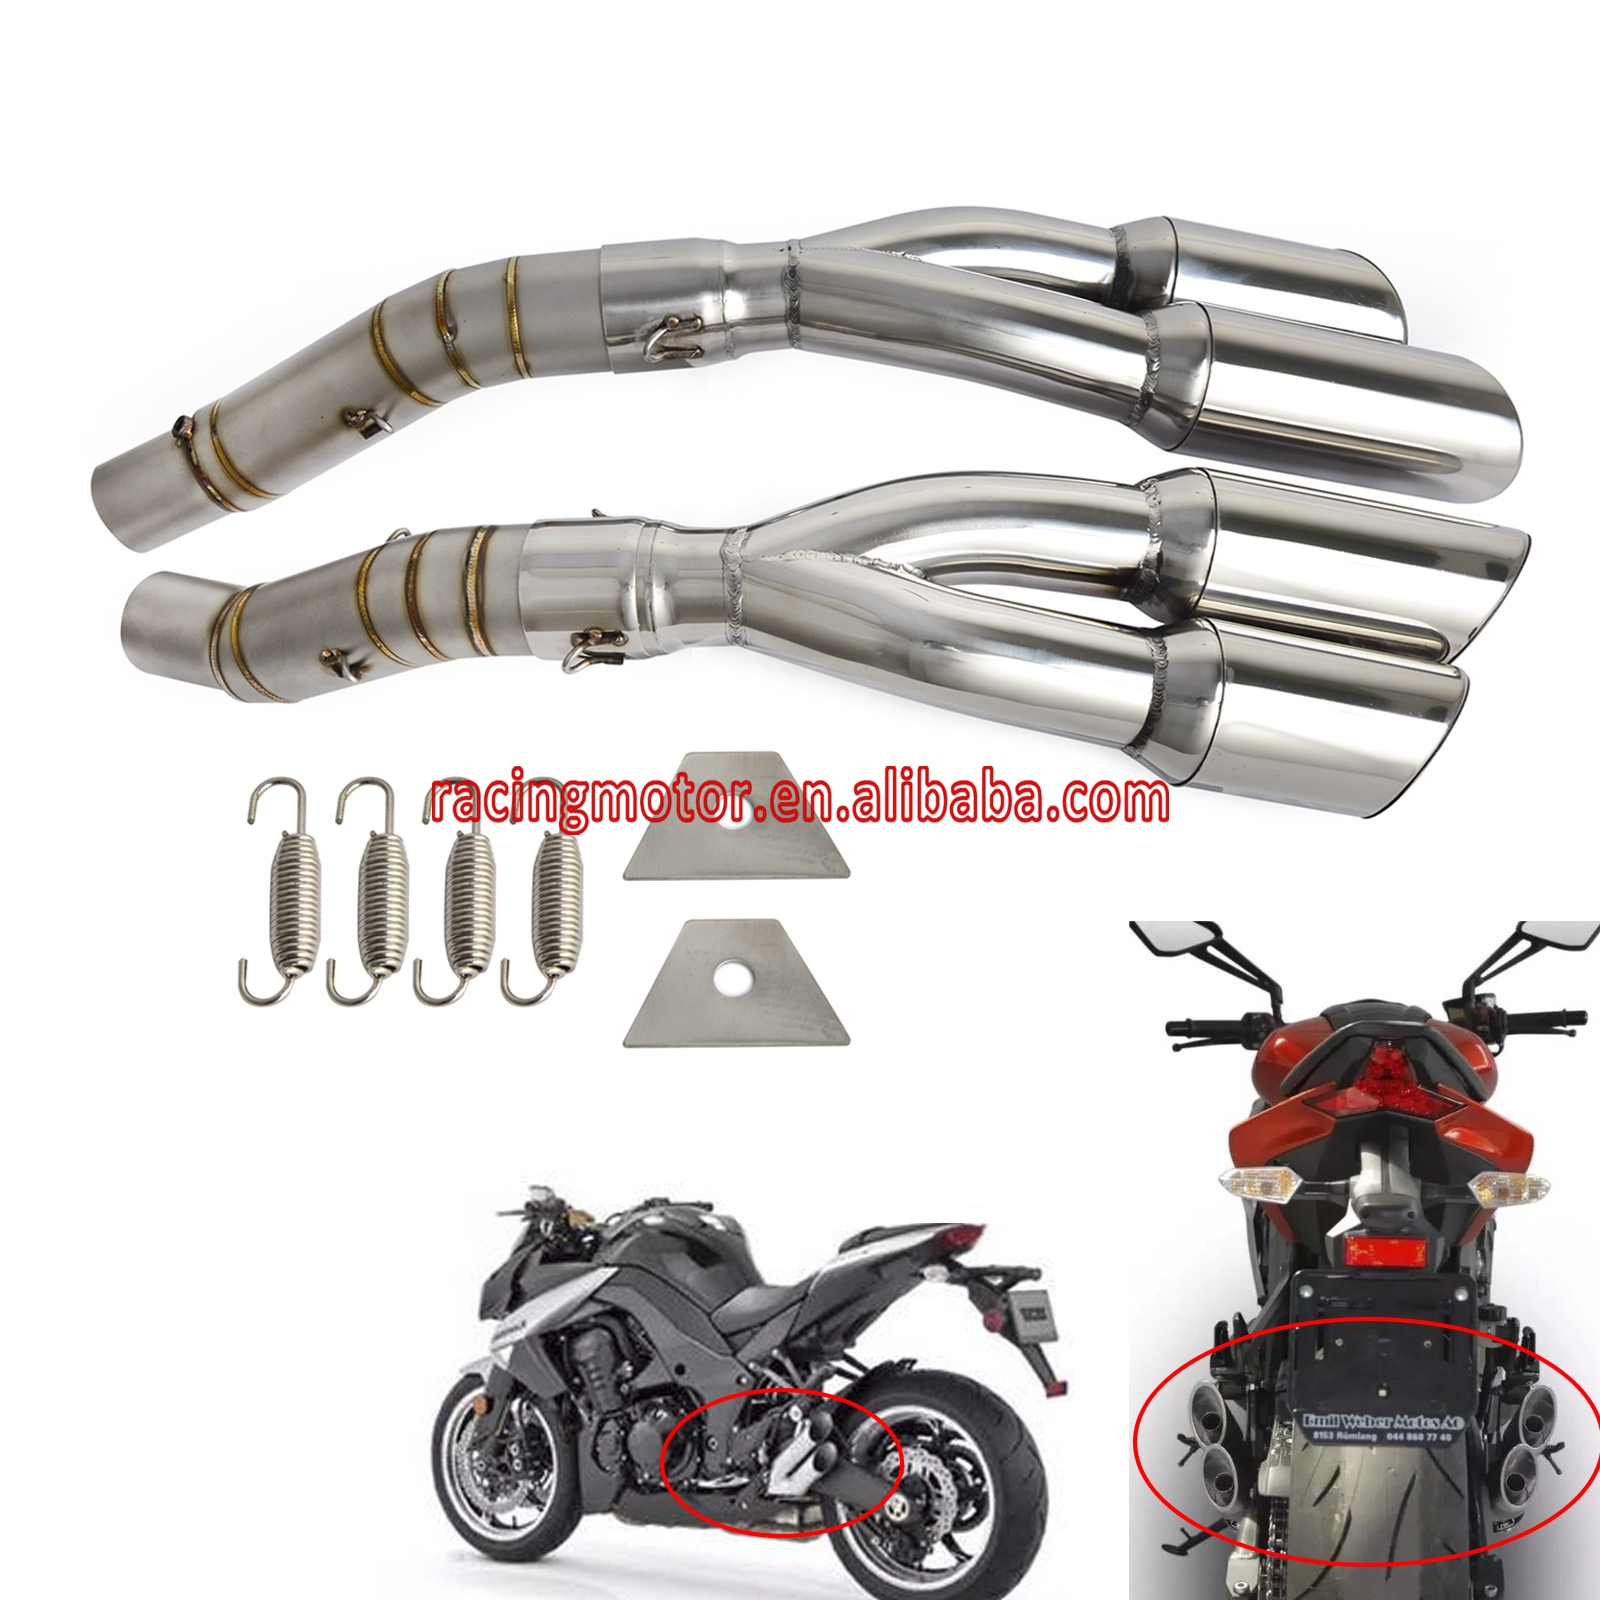 NICECNC Motorcycle Exhaust Pipe for Kawasaki Z1000 2010 2011 2012 2013 2014 2015 2016 Z 1000